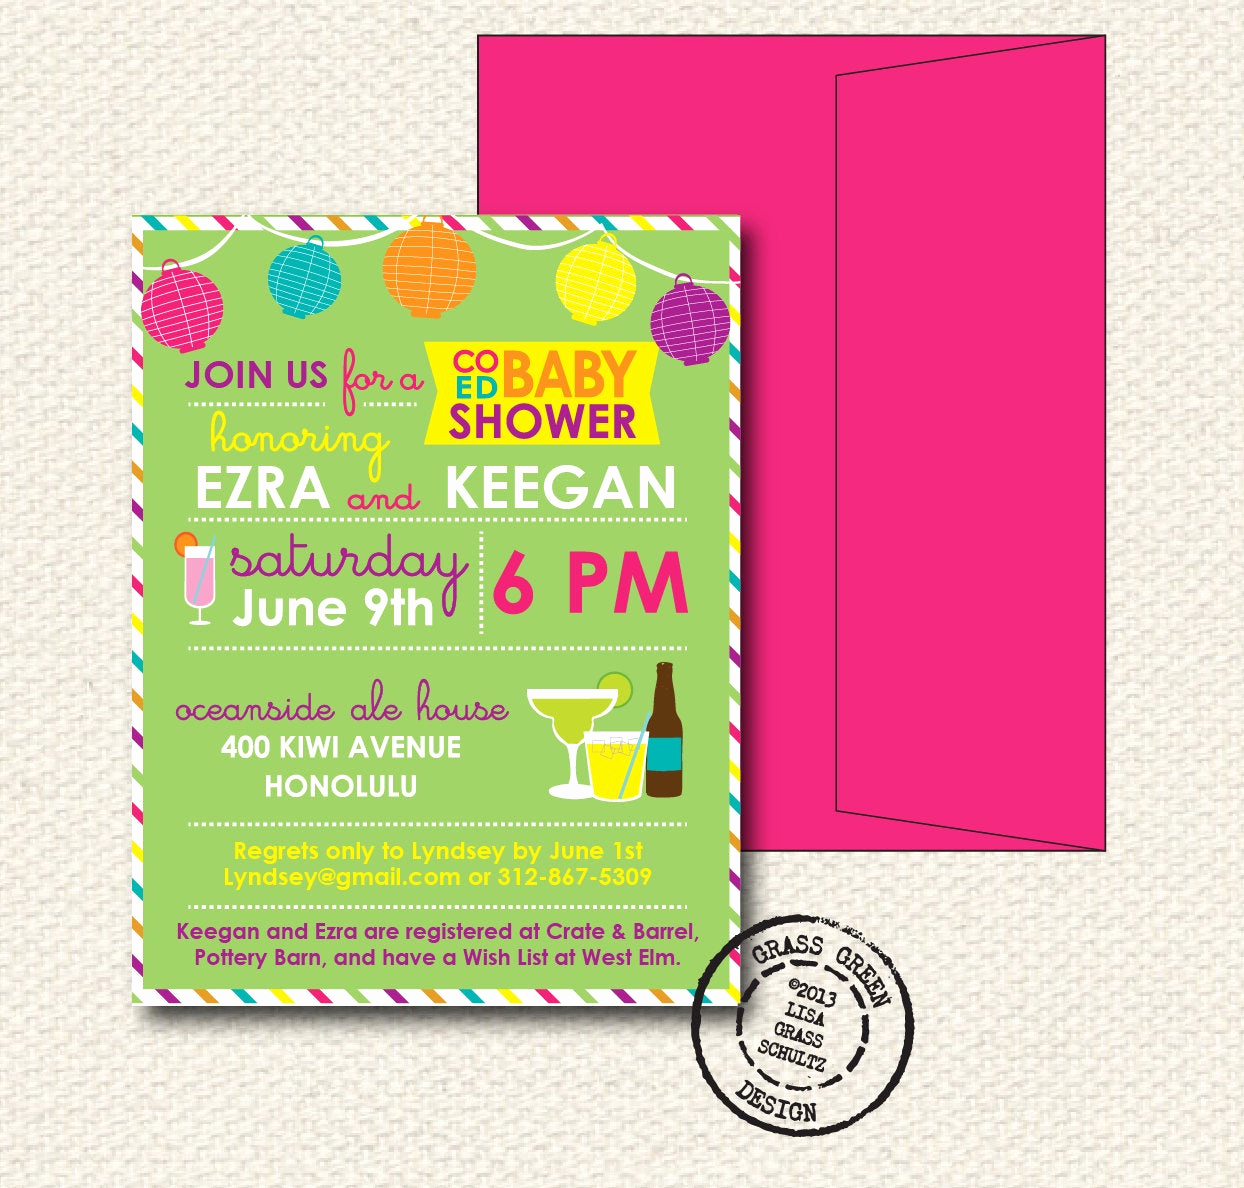 Coed Shower Invitation Wording Lovely Coed Baby Shower Invitation 15 Custom Invitations with